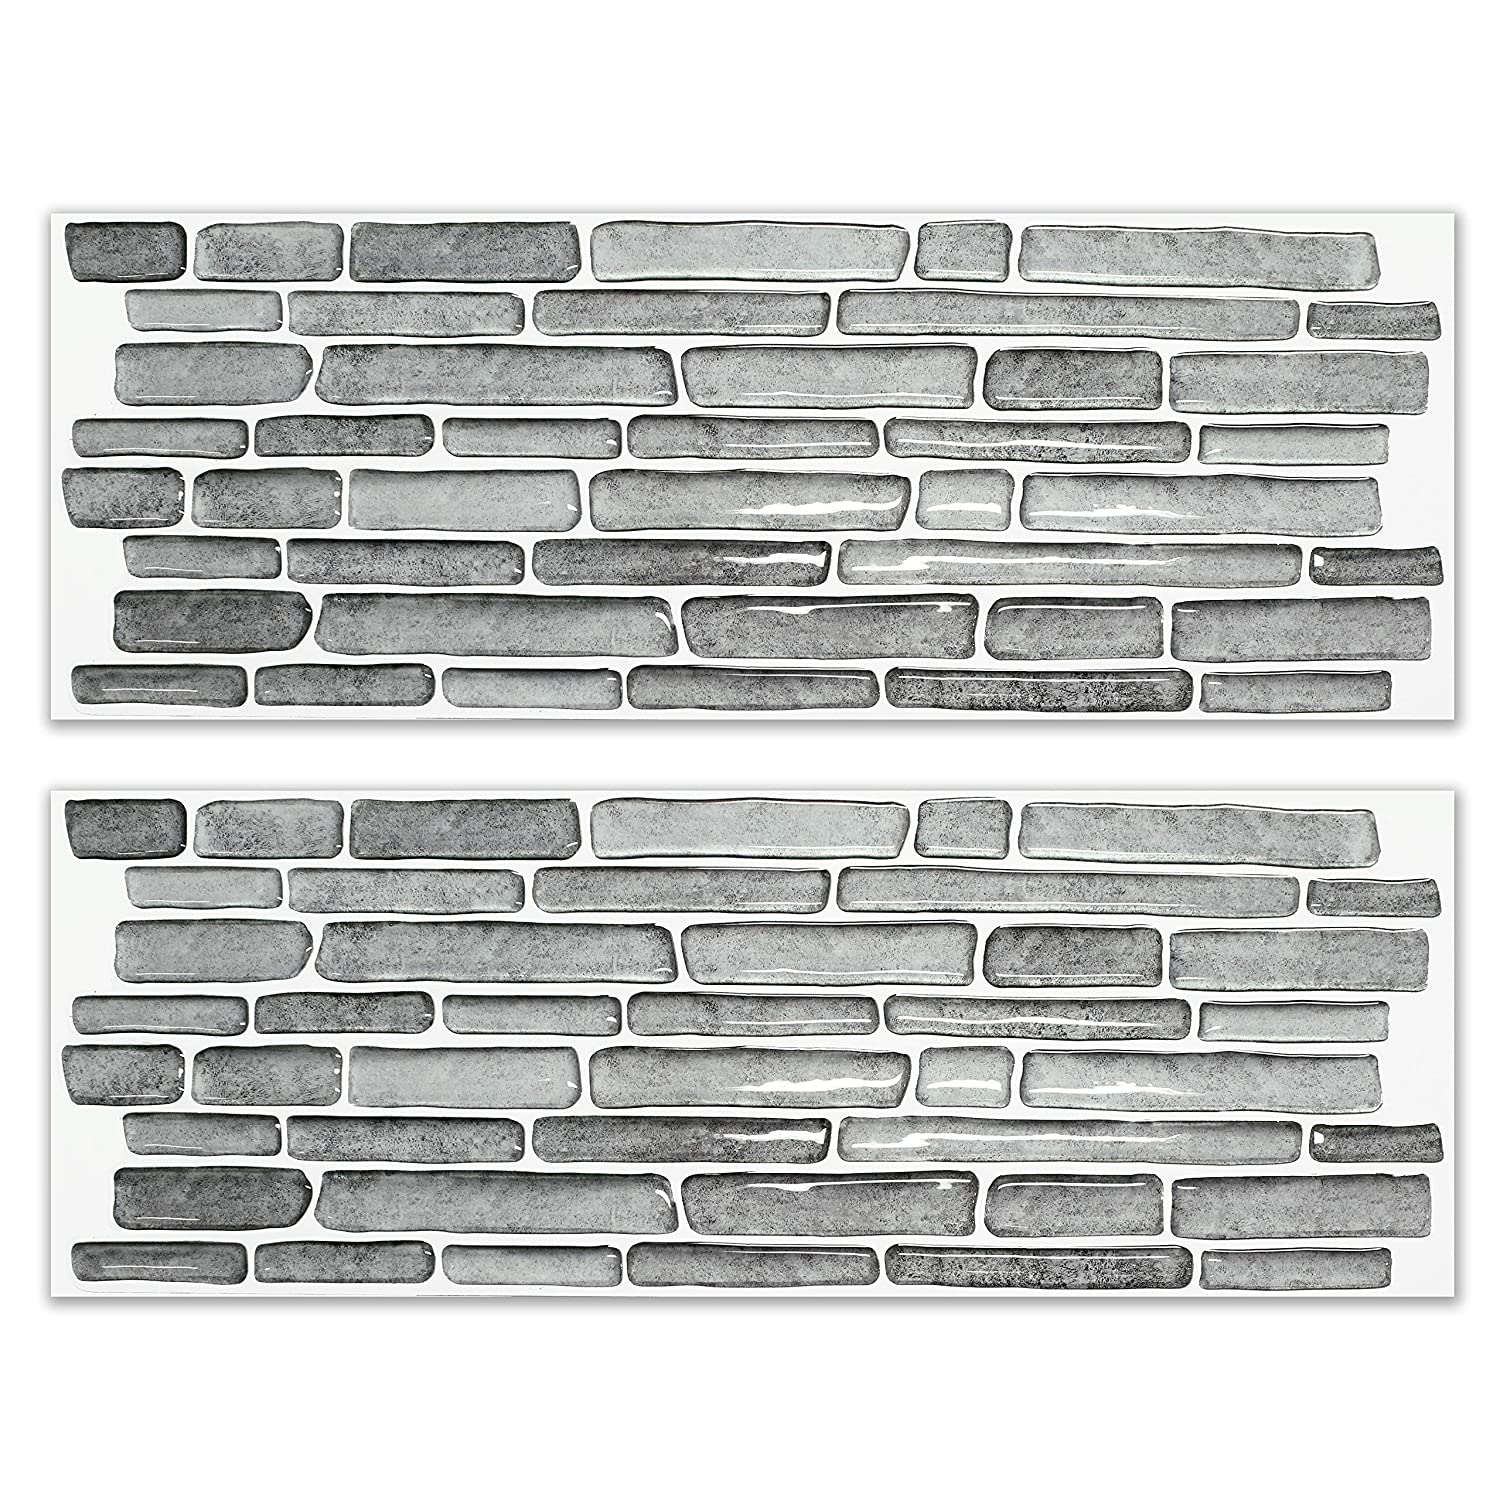 BEAUSTILE Decorative Tile Stickers Peel and Stick Backsplash Fire Retardant Tile Sheet (2, Flower Motif) UNIDESIGN SWT-6